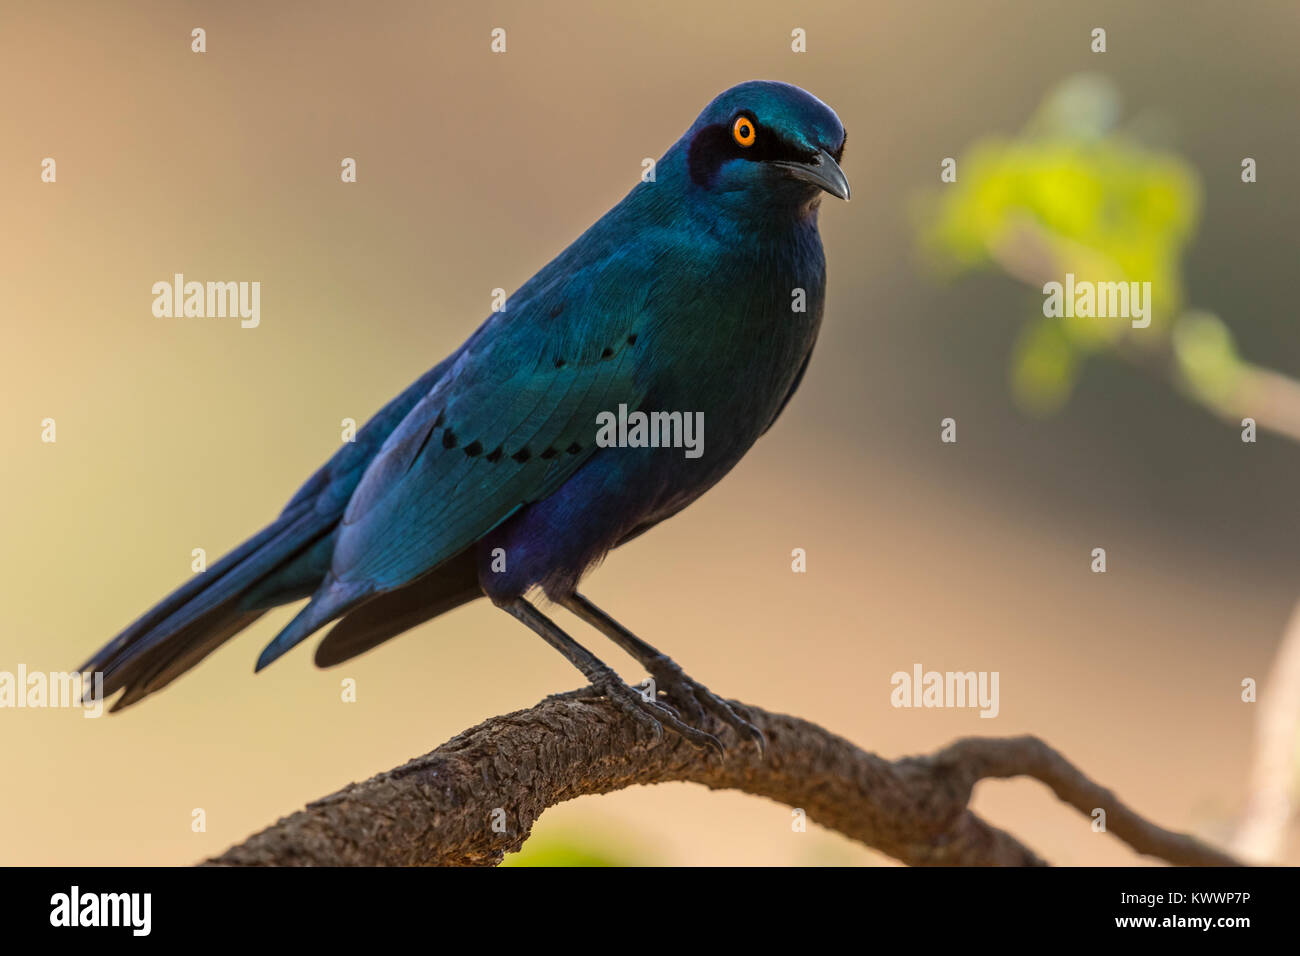 Greater Blue-eared Glossy-Starling, Greater Blue-eared Starling, (Lamprotornis chalybaeus ssp. nordmanni), Sturnidae - Stock Image